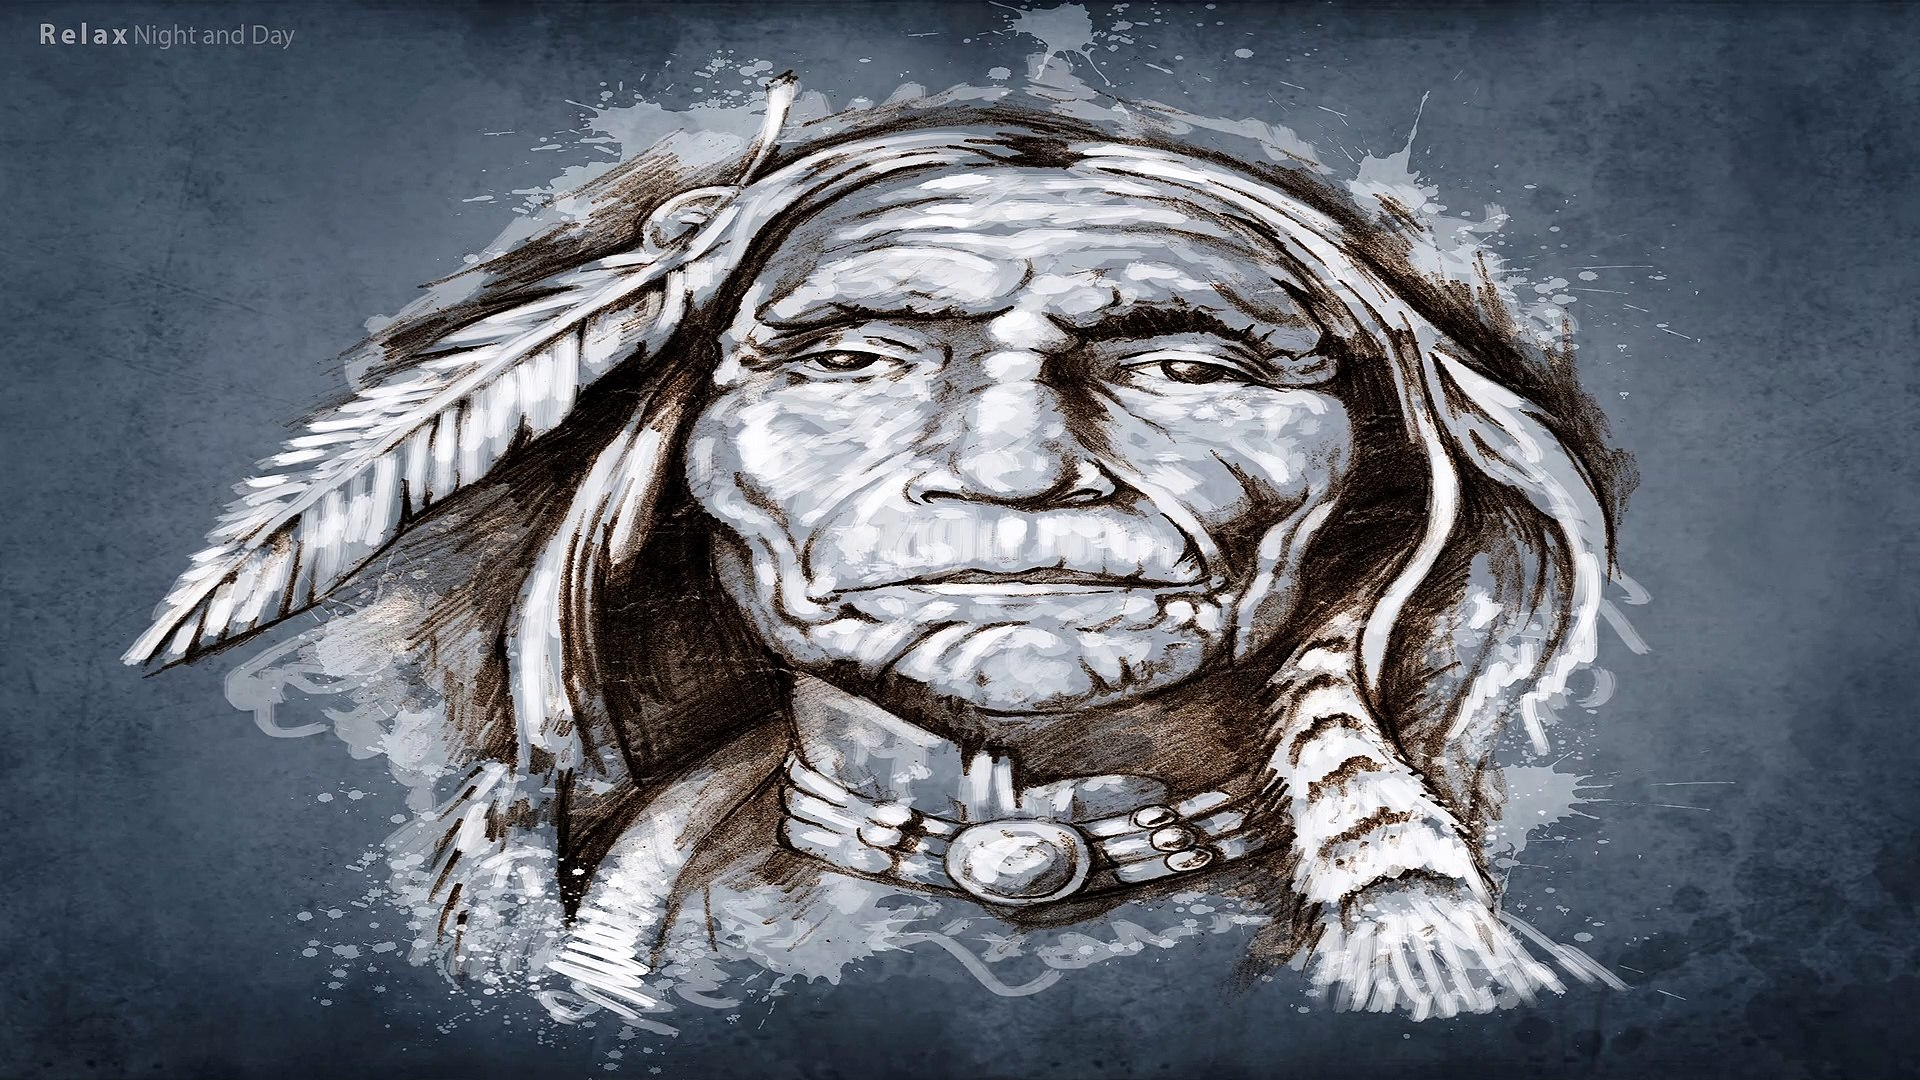 Native American Music Mix - 1 1/2 Hours - 4K ! - Shamanic Journey, Spiritual Music, Meditation Music